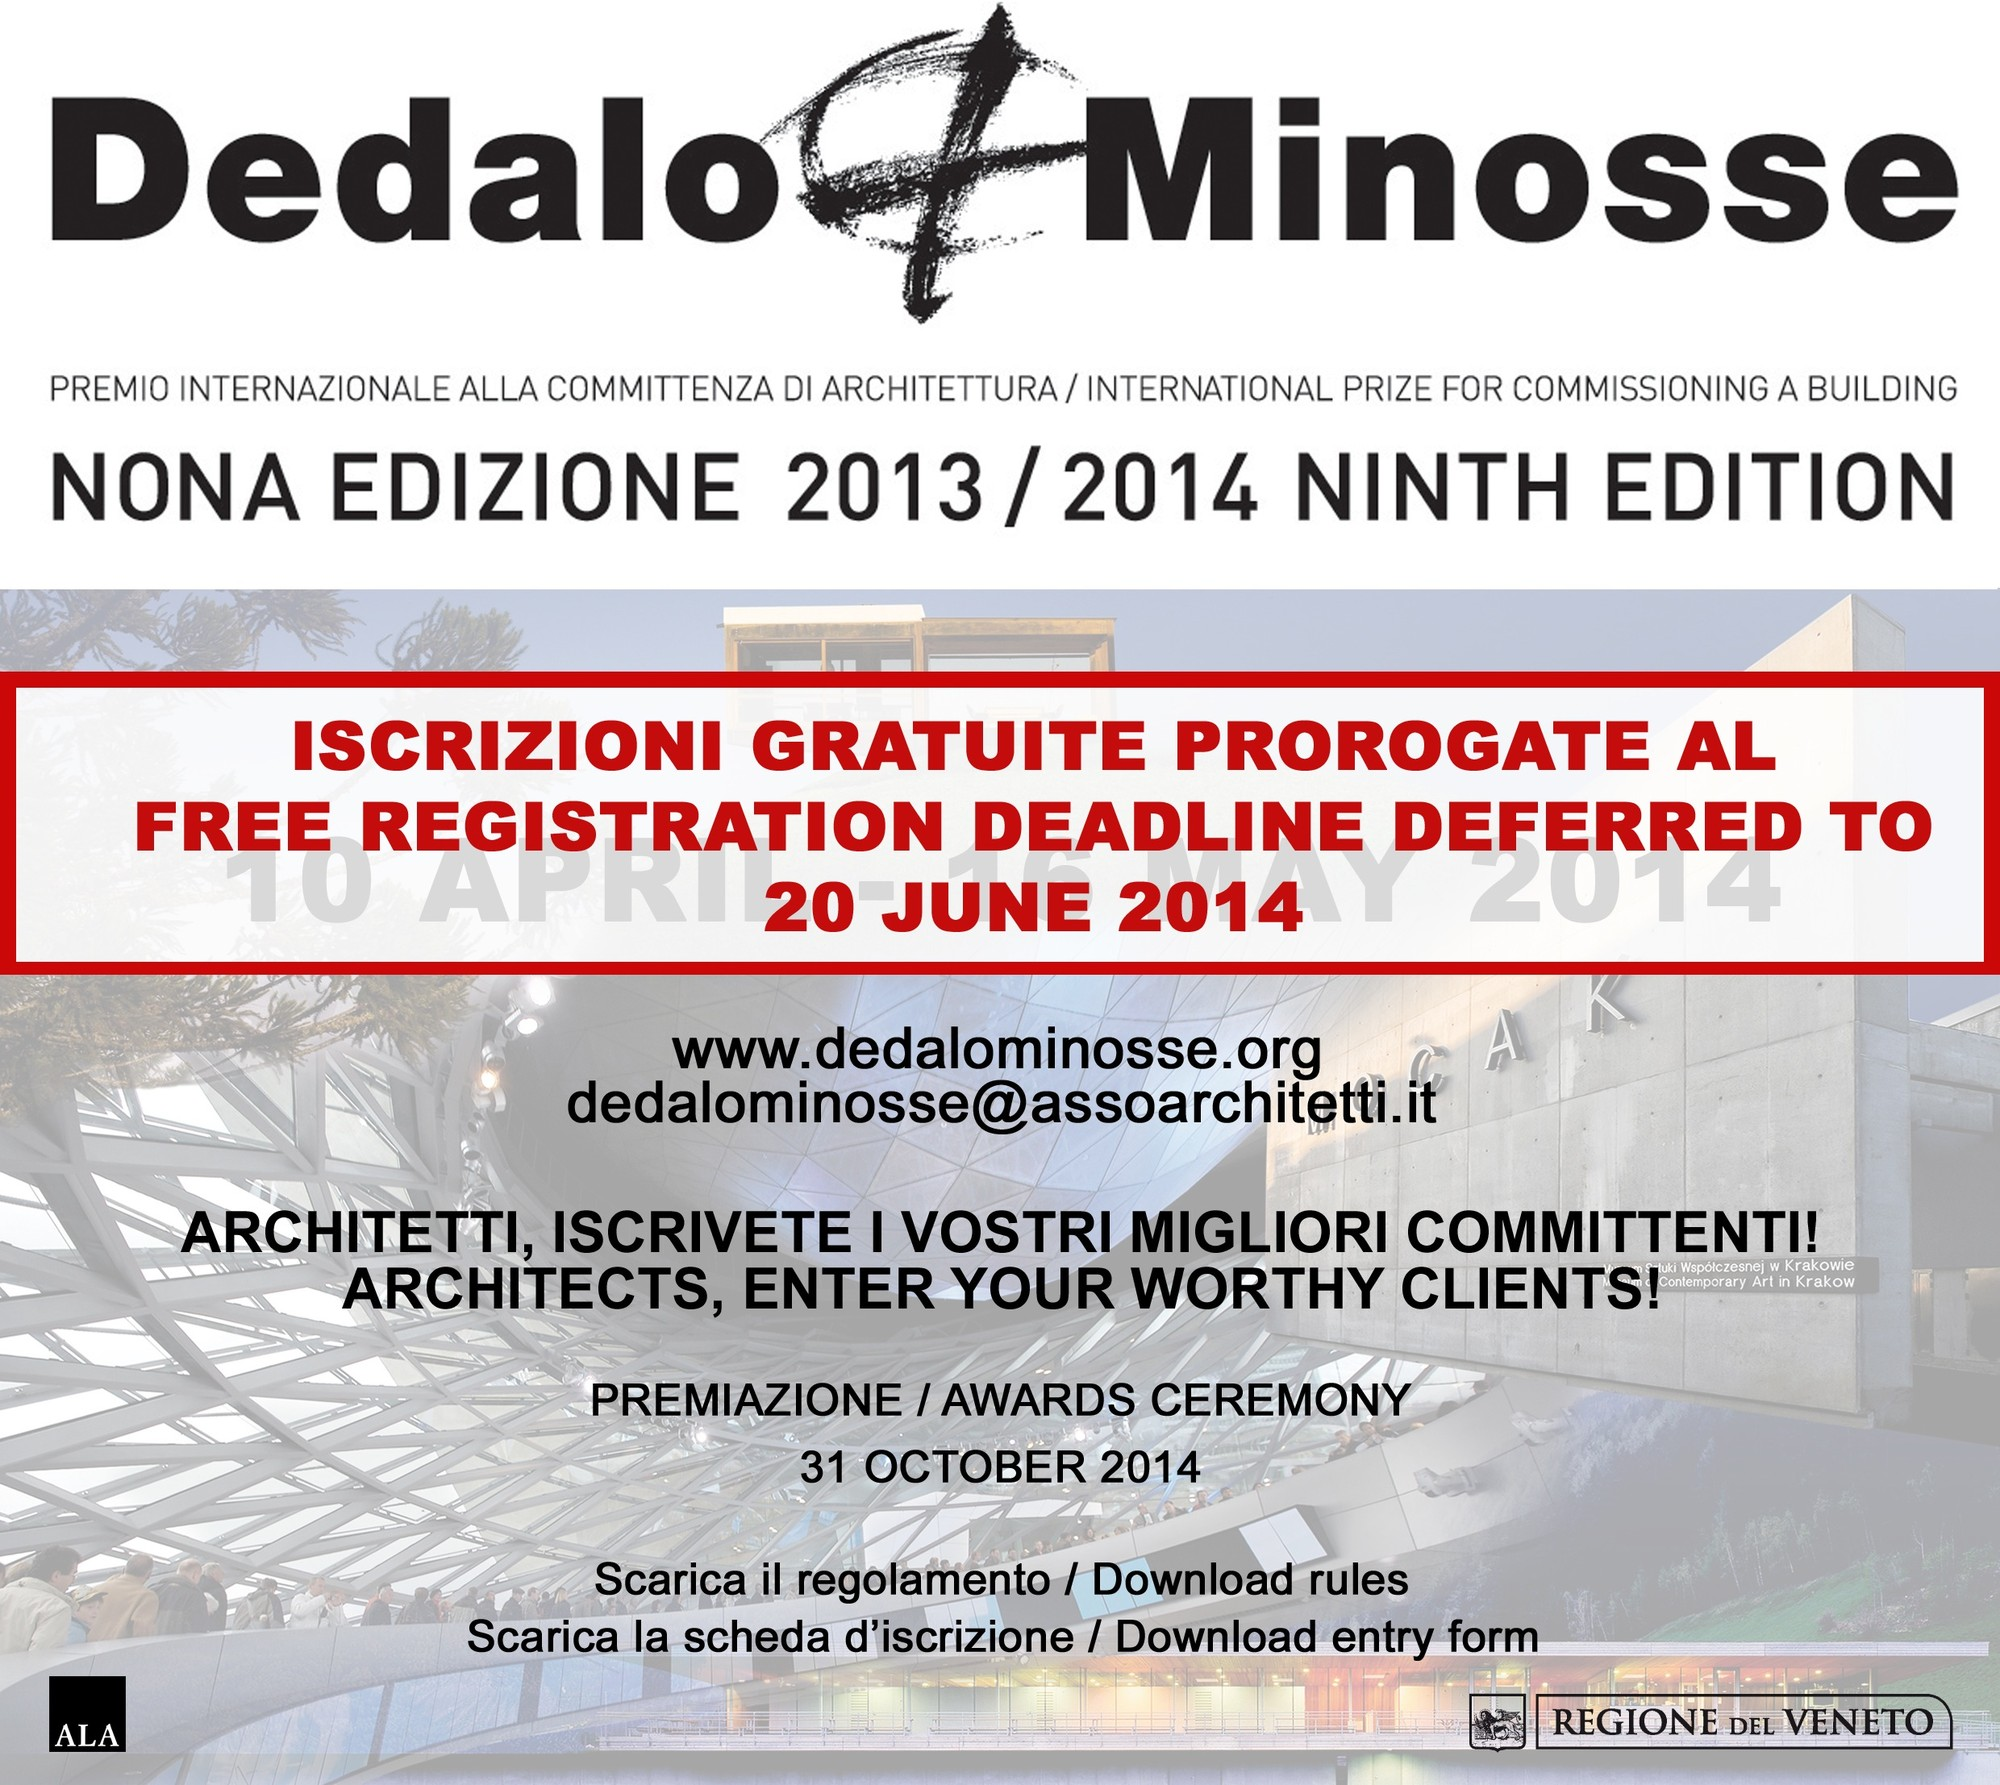 Dedalo Minosse International Prize for Commissioning a Building